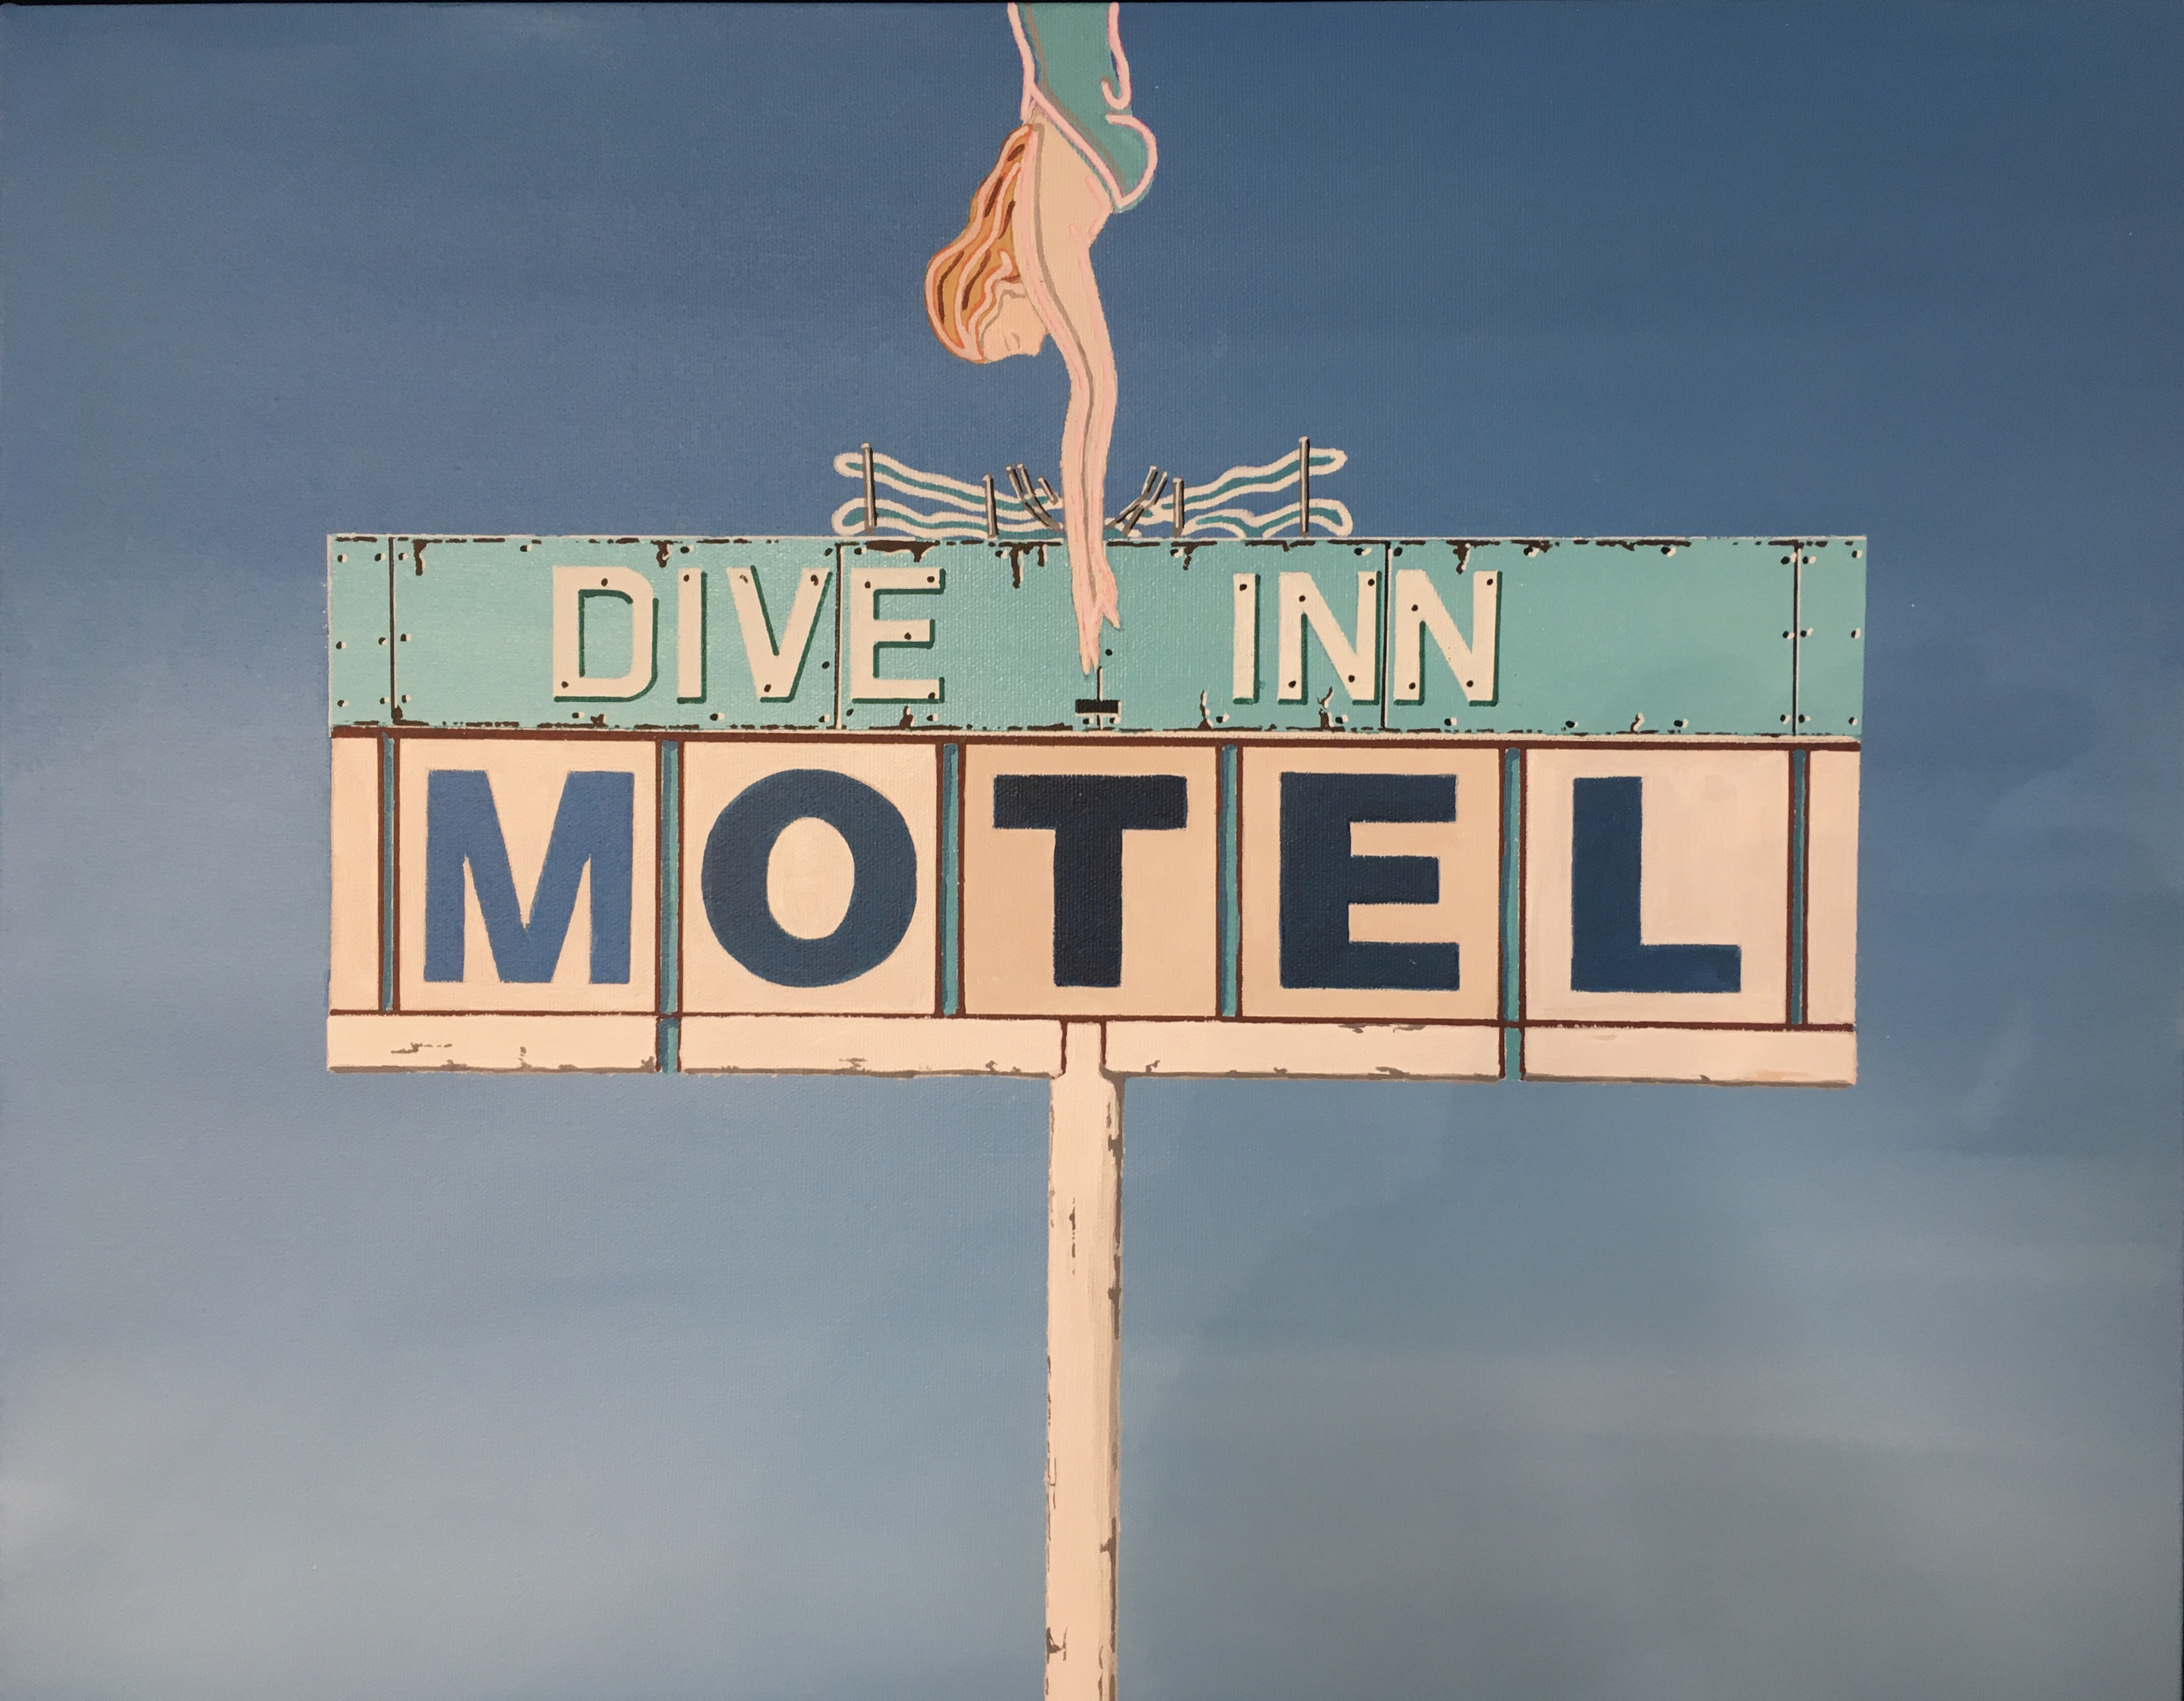 Dive Inn Motel